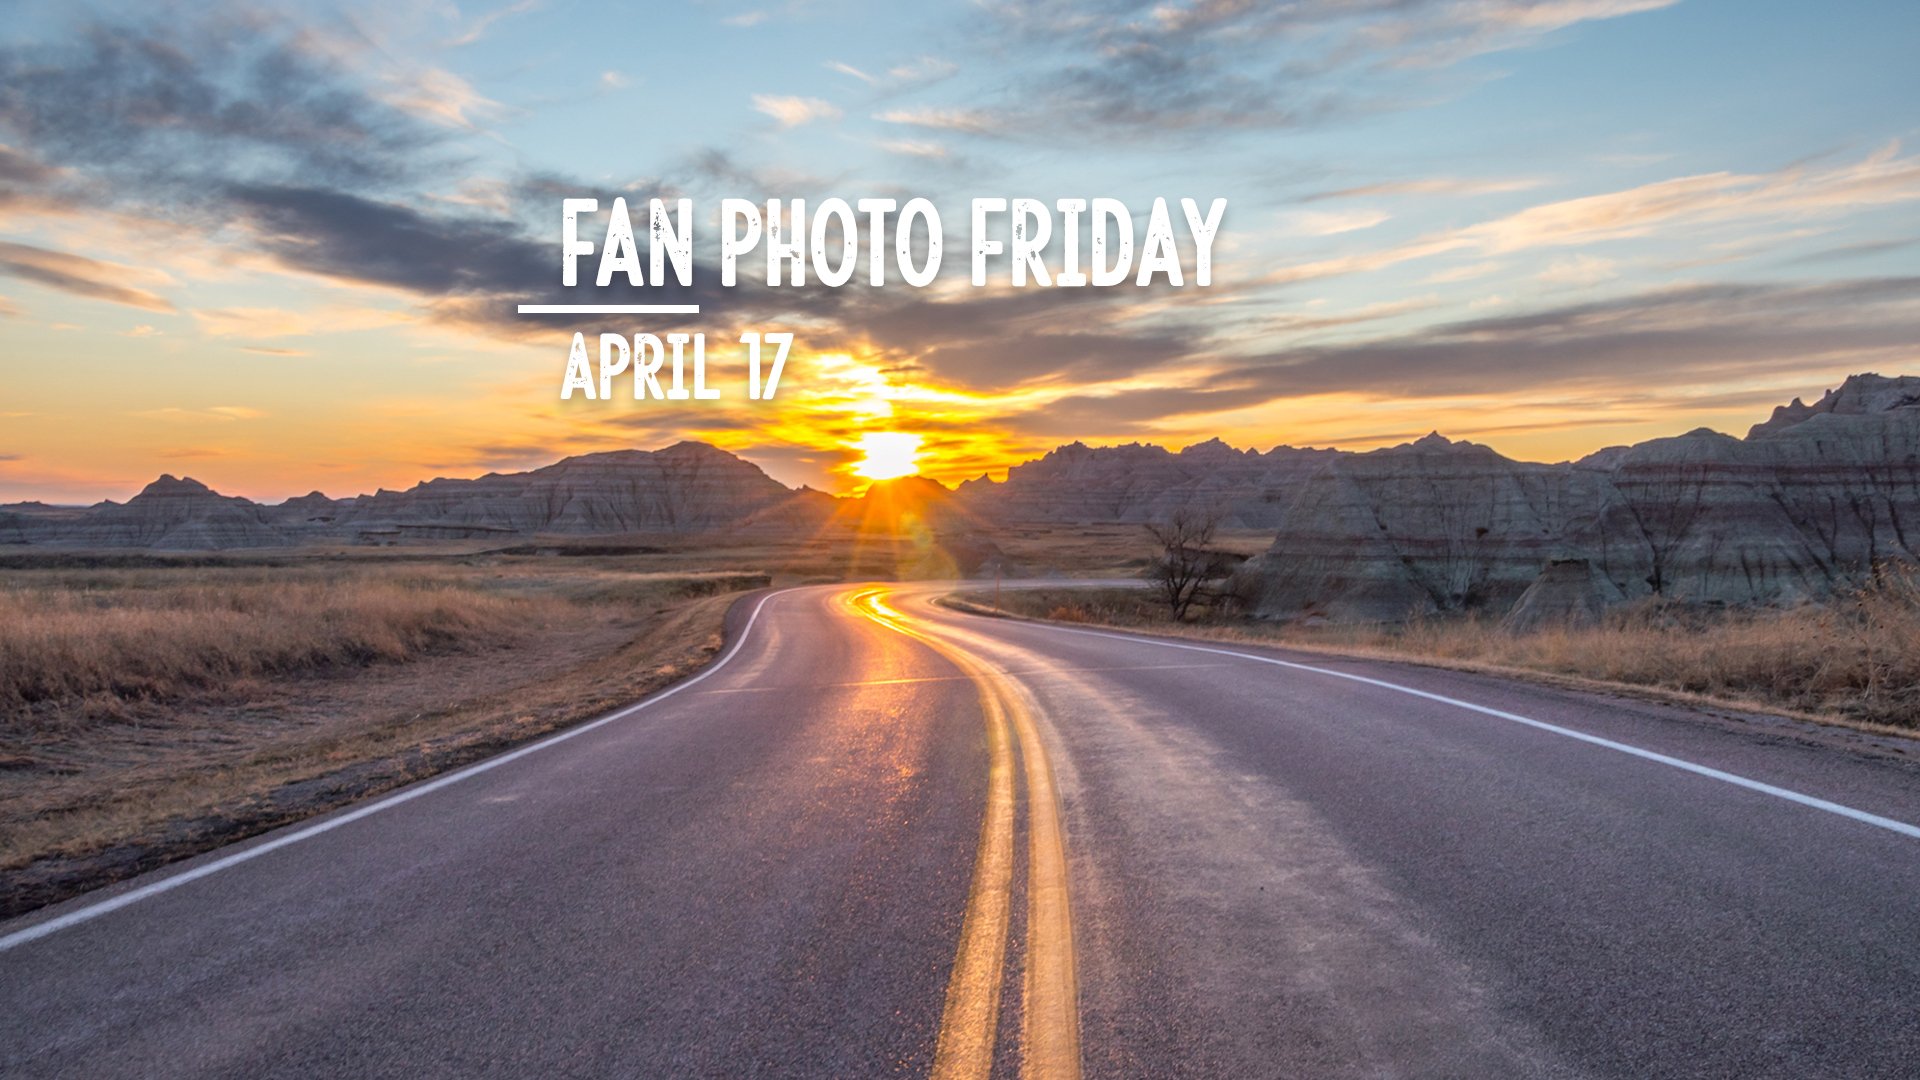 Fan Photo Friday | April 17, 2020